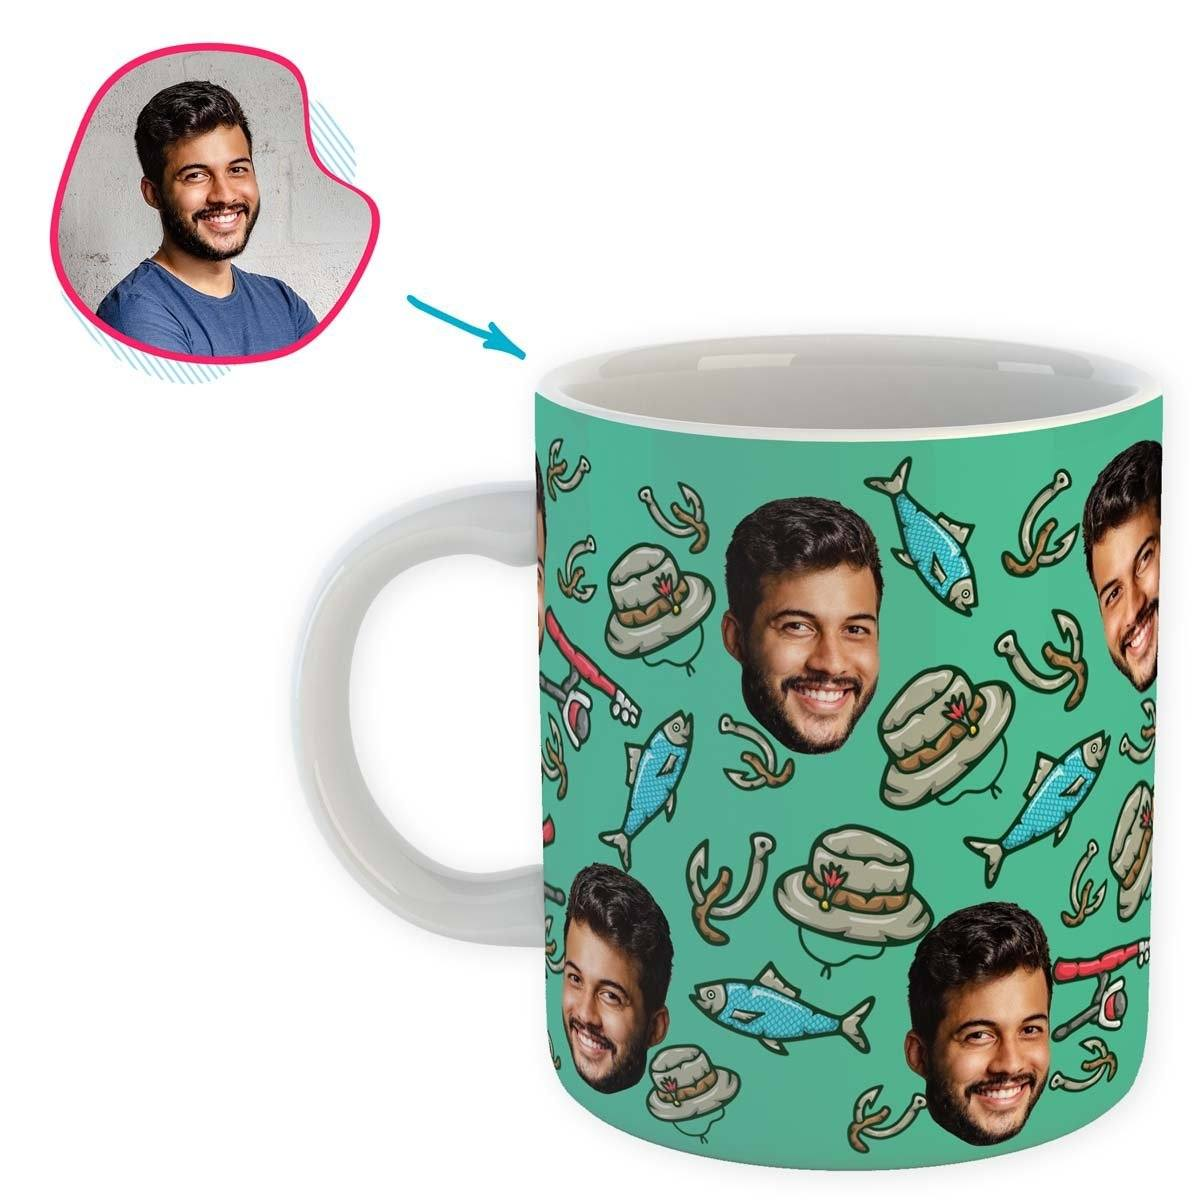 Mint Fishing personalized mug with photo of face printed on it